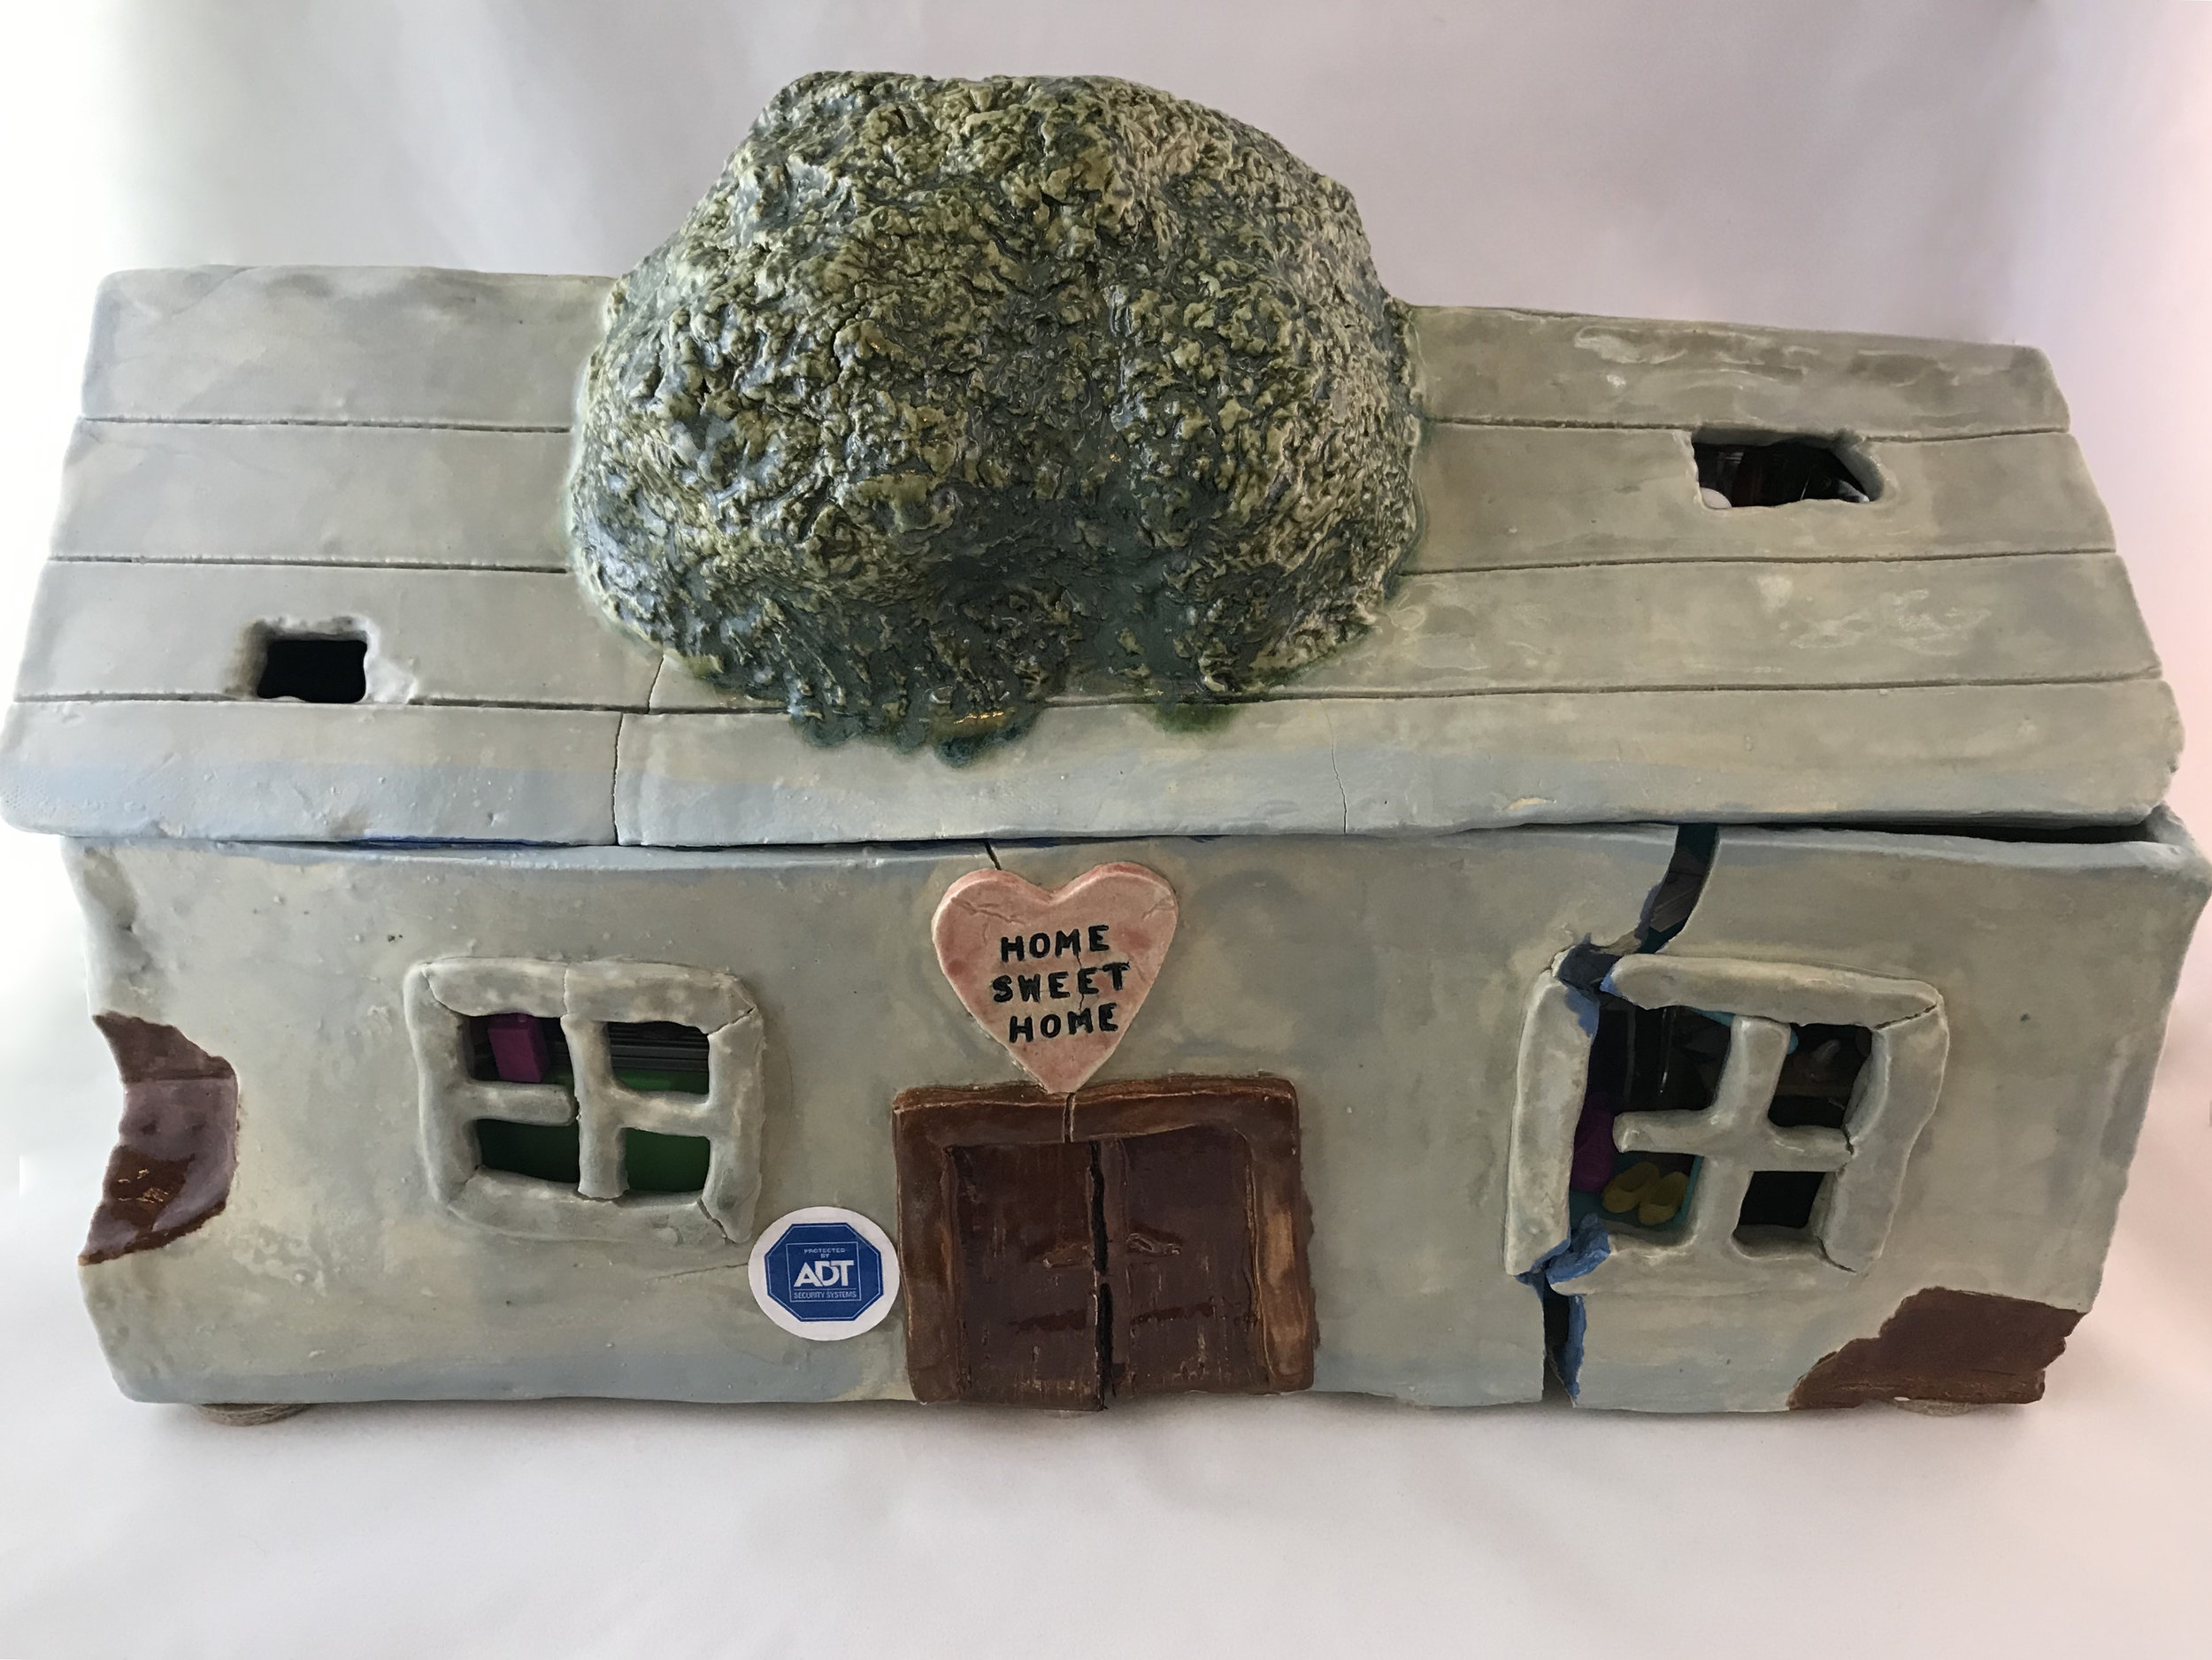 Grand Prize Winner: Home Sweet Home (View 1)